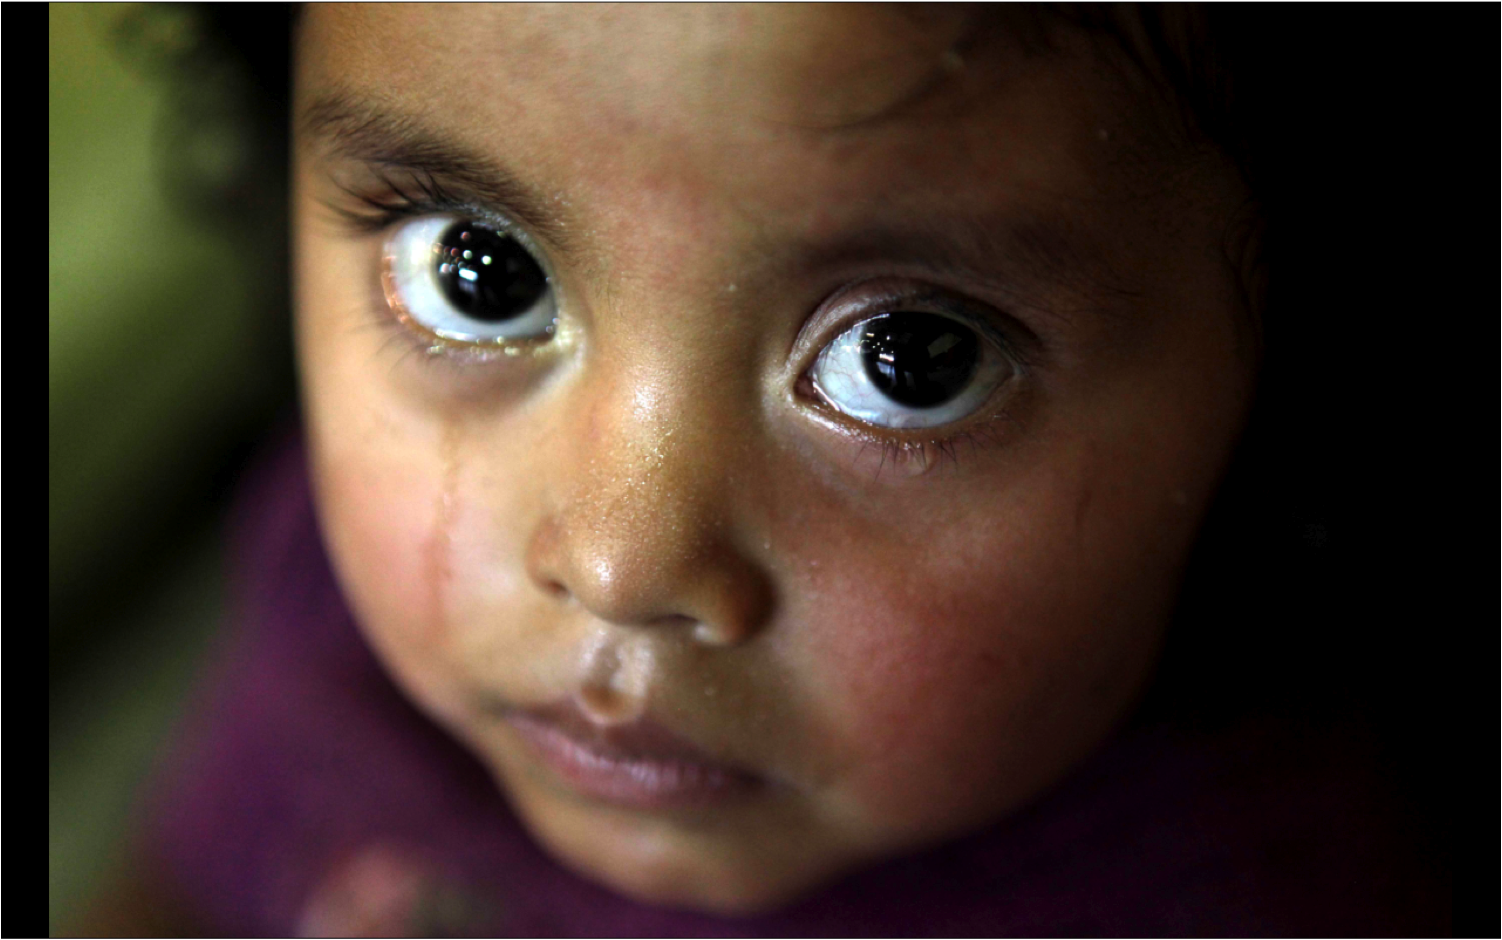 In Guatemala, half of the population between zero and five years of age suffer from chronic malnutrition